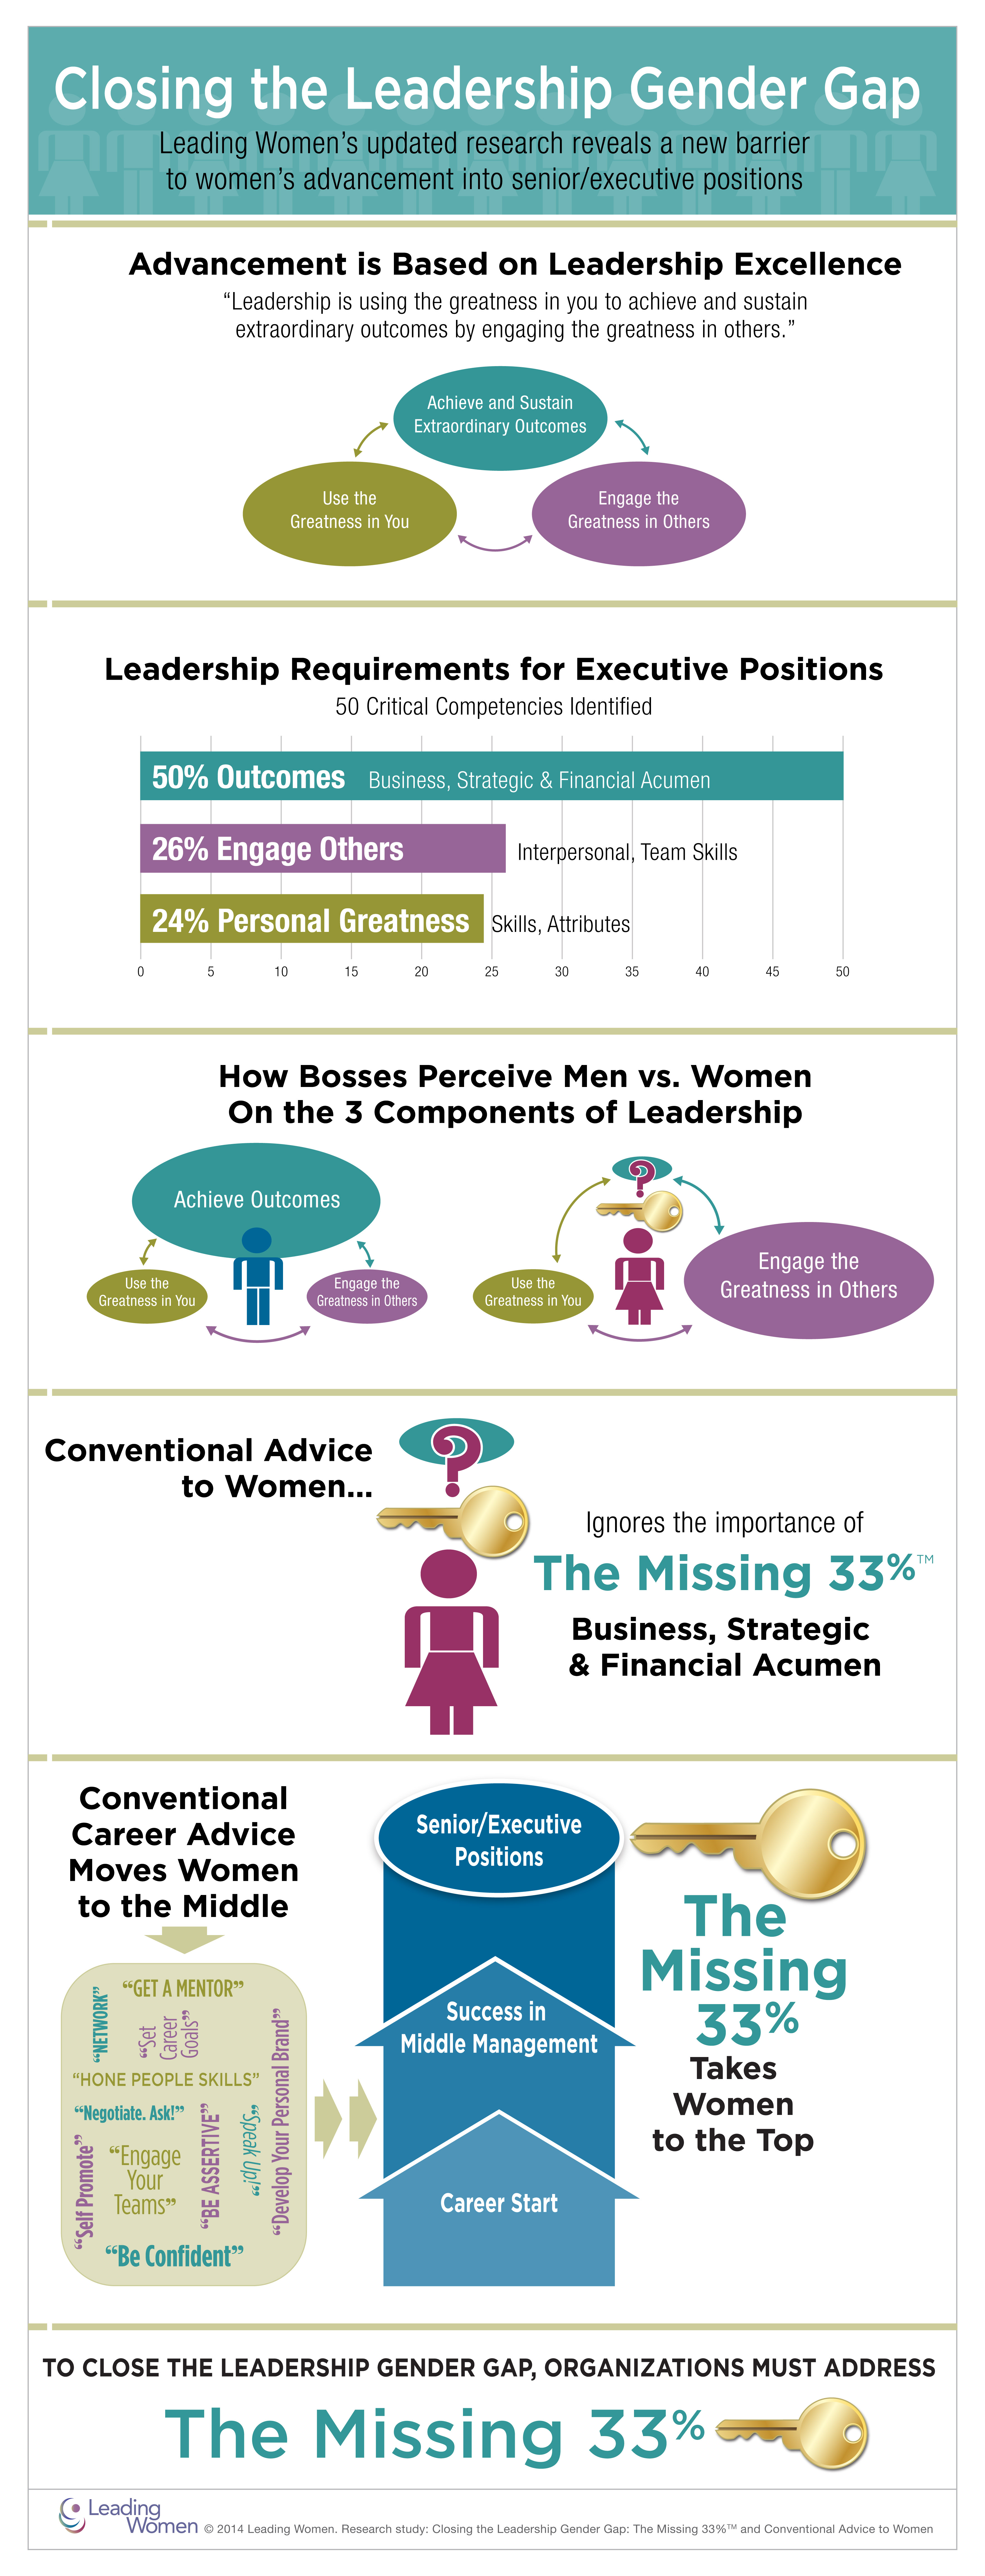 missing-33-infographic-final_7-15